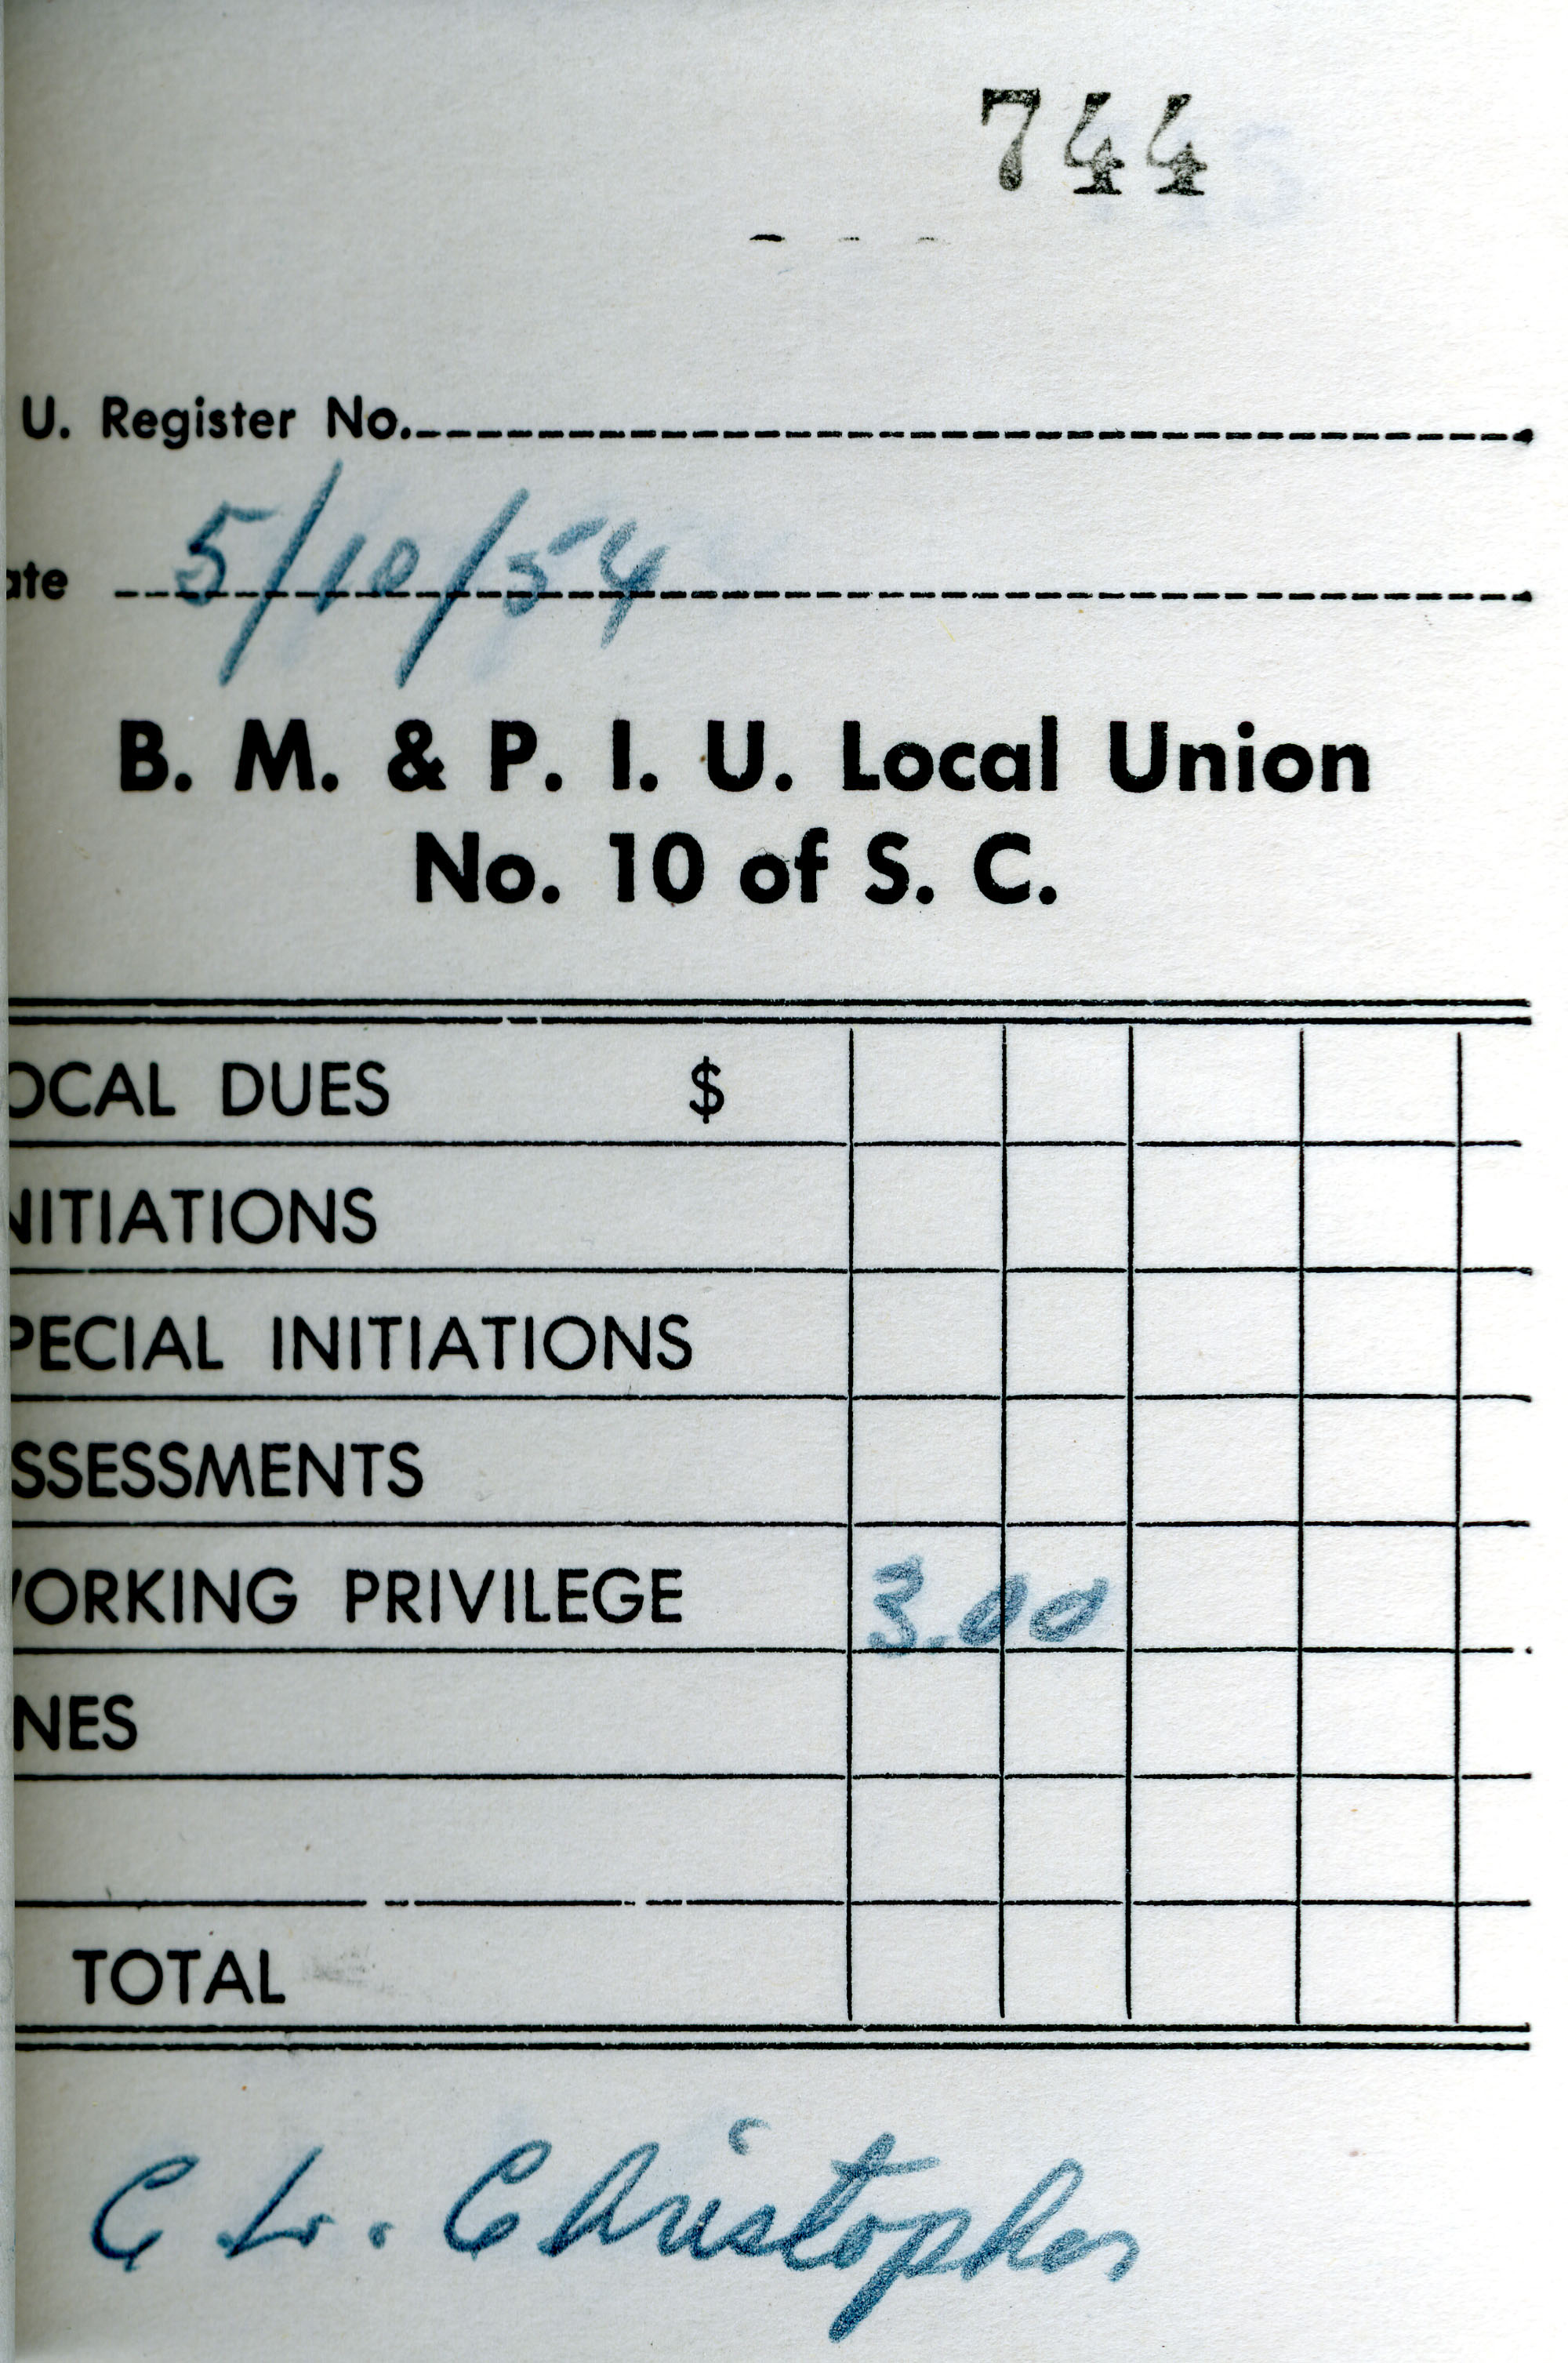 Receipt Book 5, Page 44